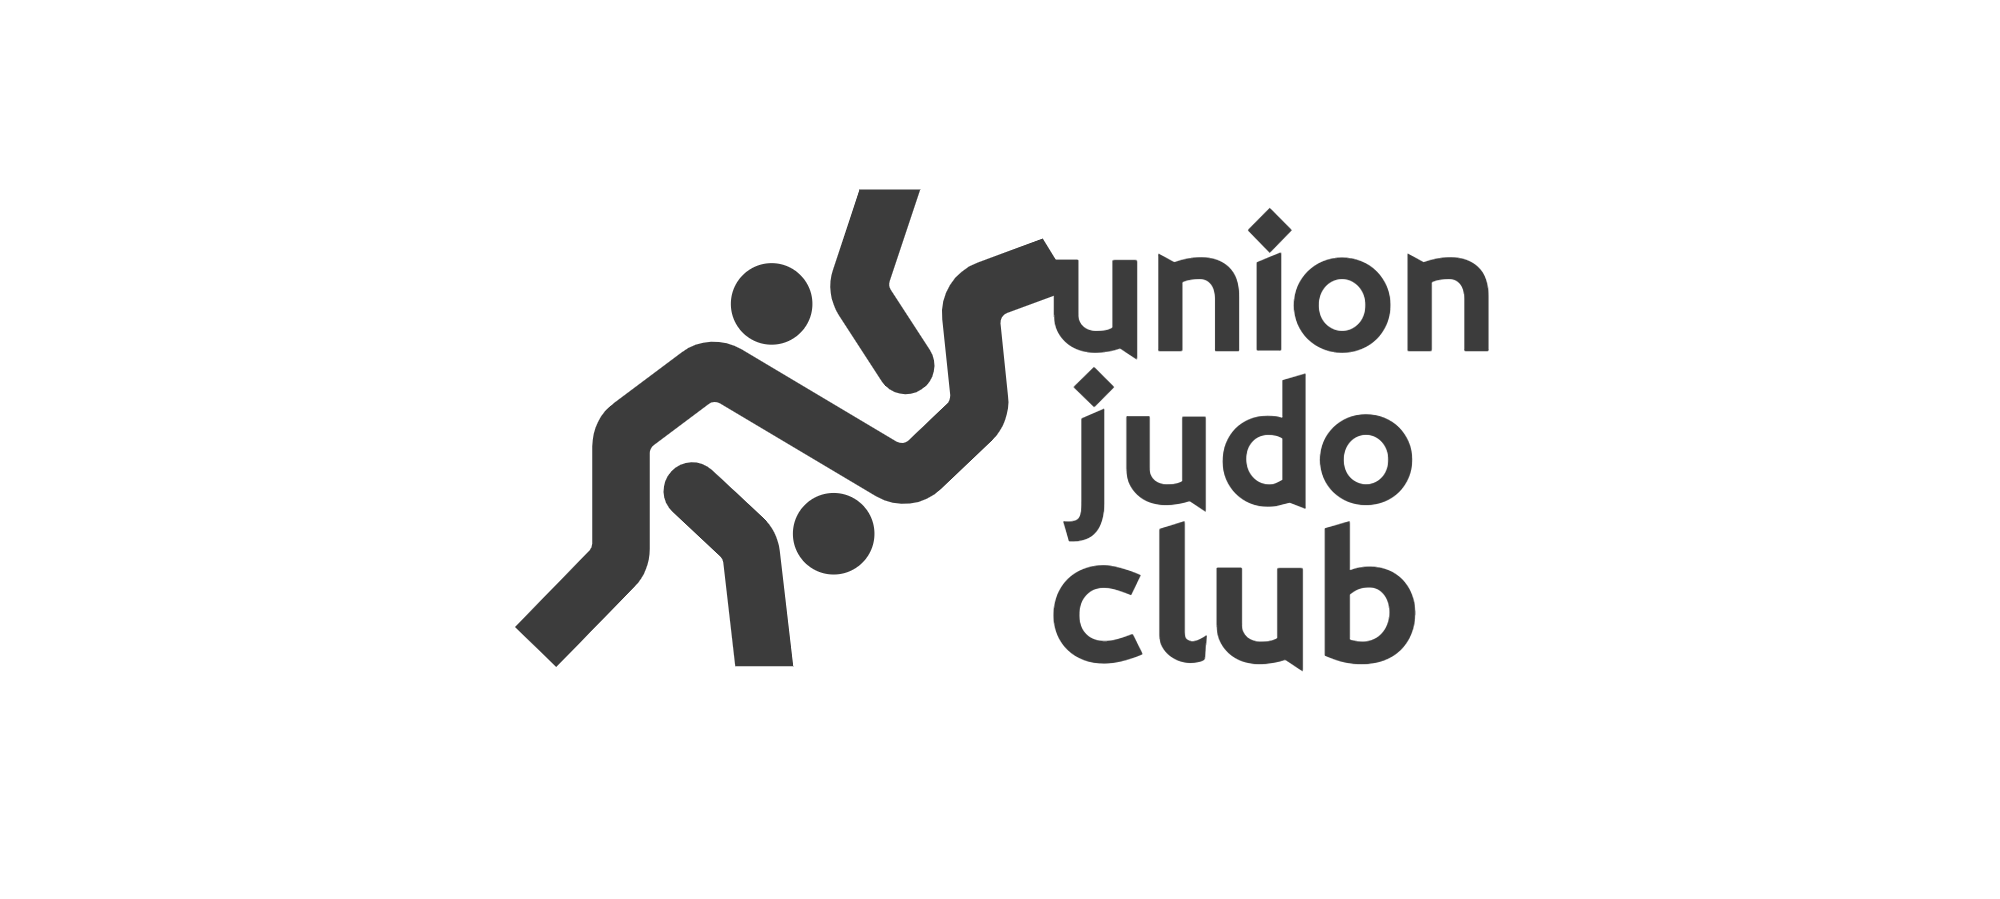 Union Judo Club Logaster logo